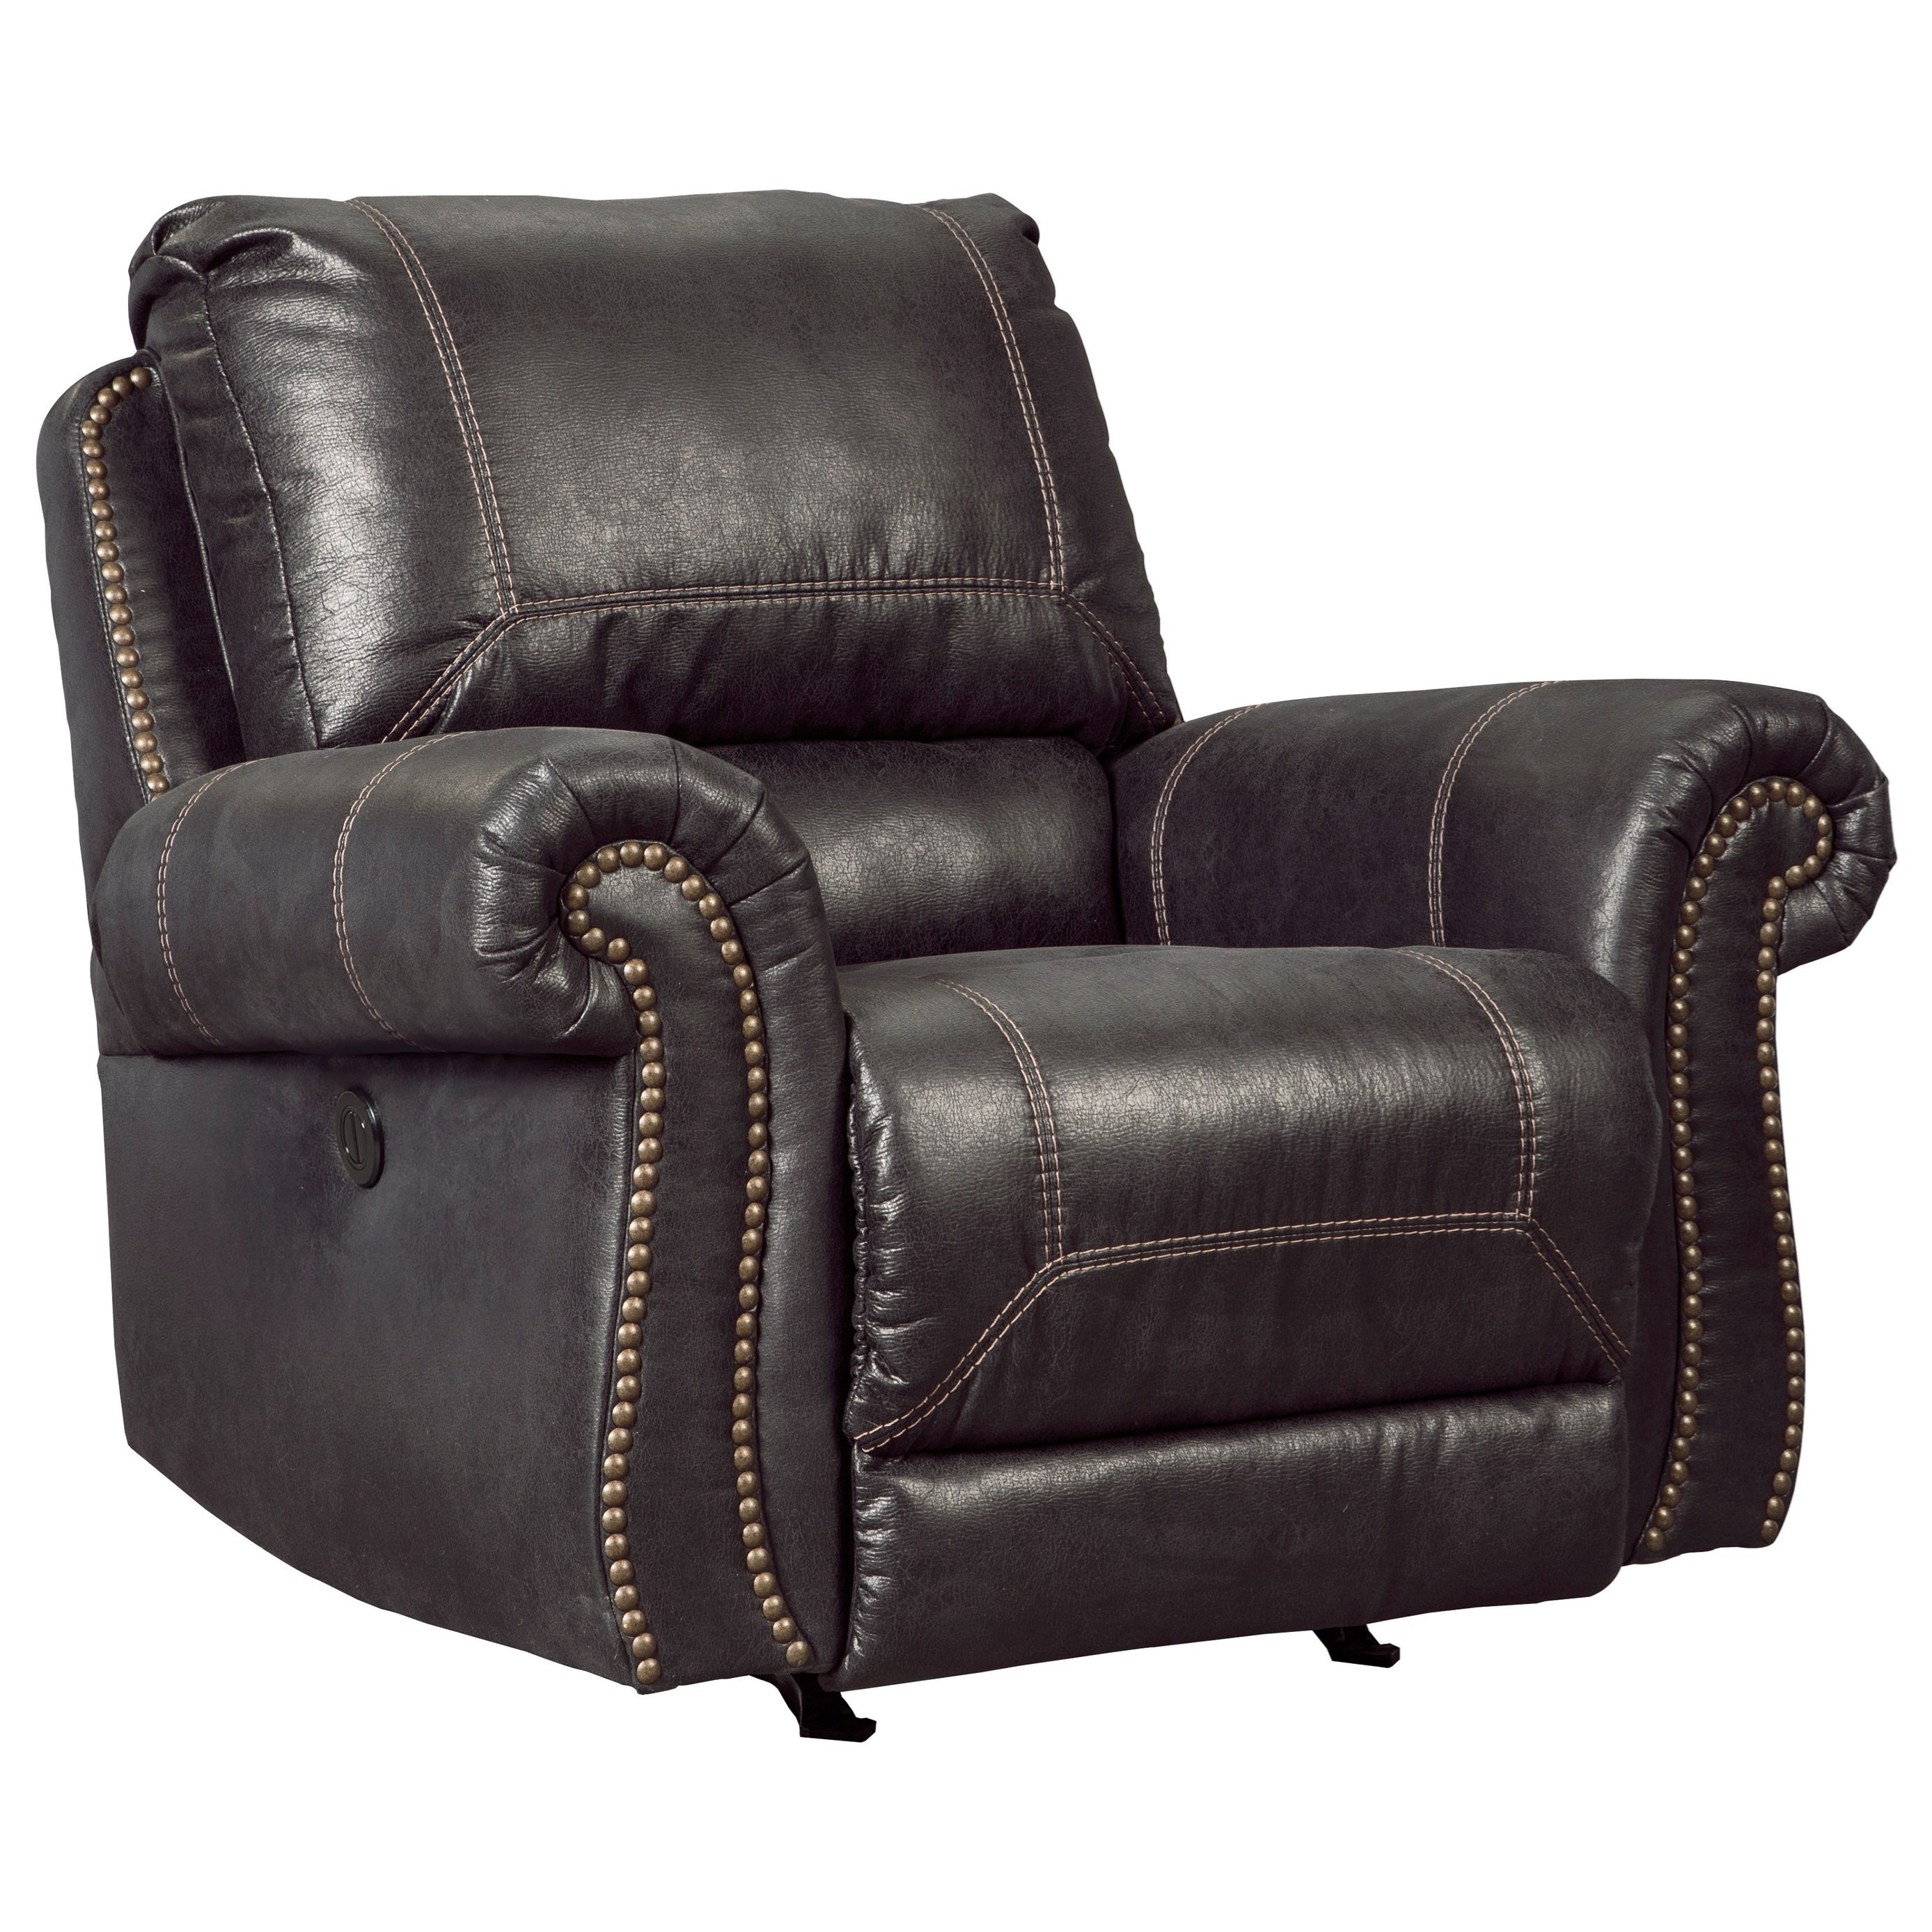 Signature Design by Ashley Milhaven Power Rocker Recliner - Item Number: 6330398